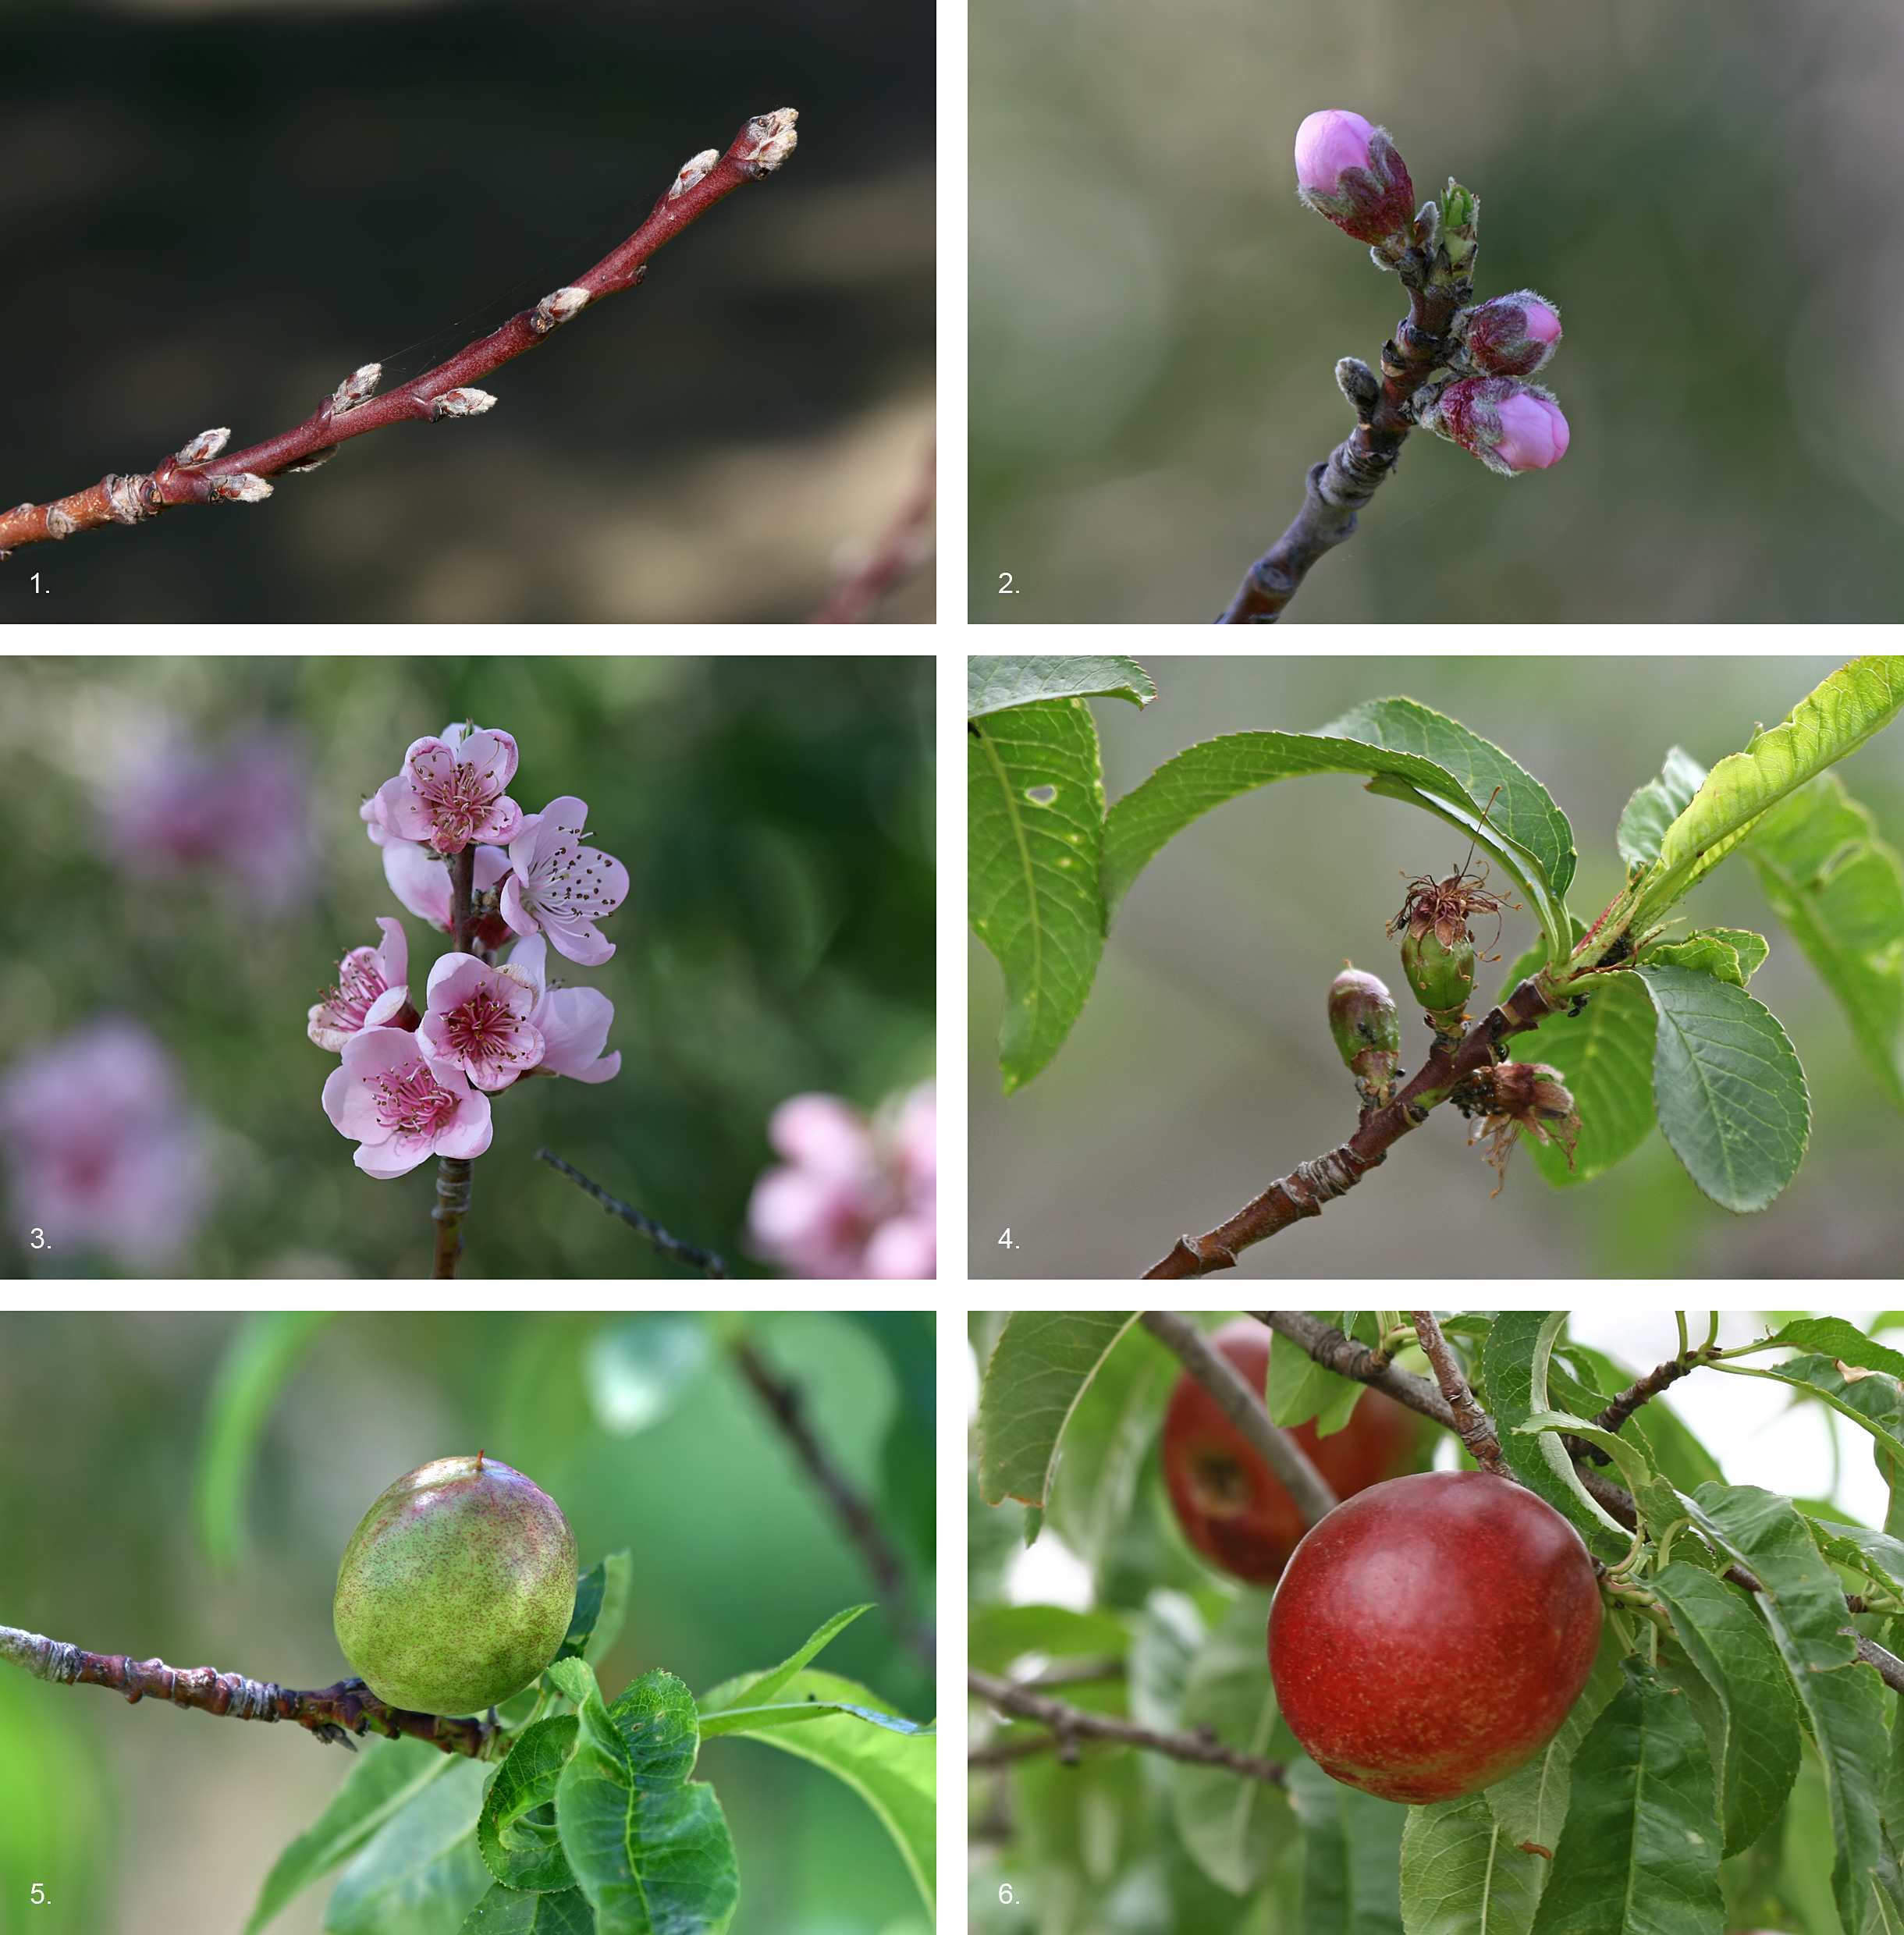 File:Nectarine Fruit Development.jpg - Wikipedia, the free ...